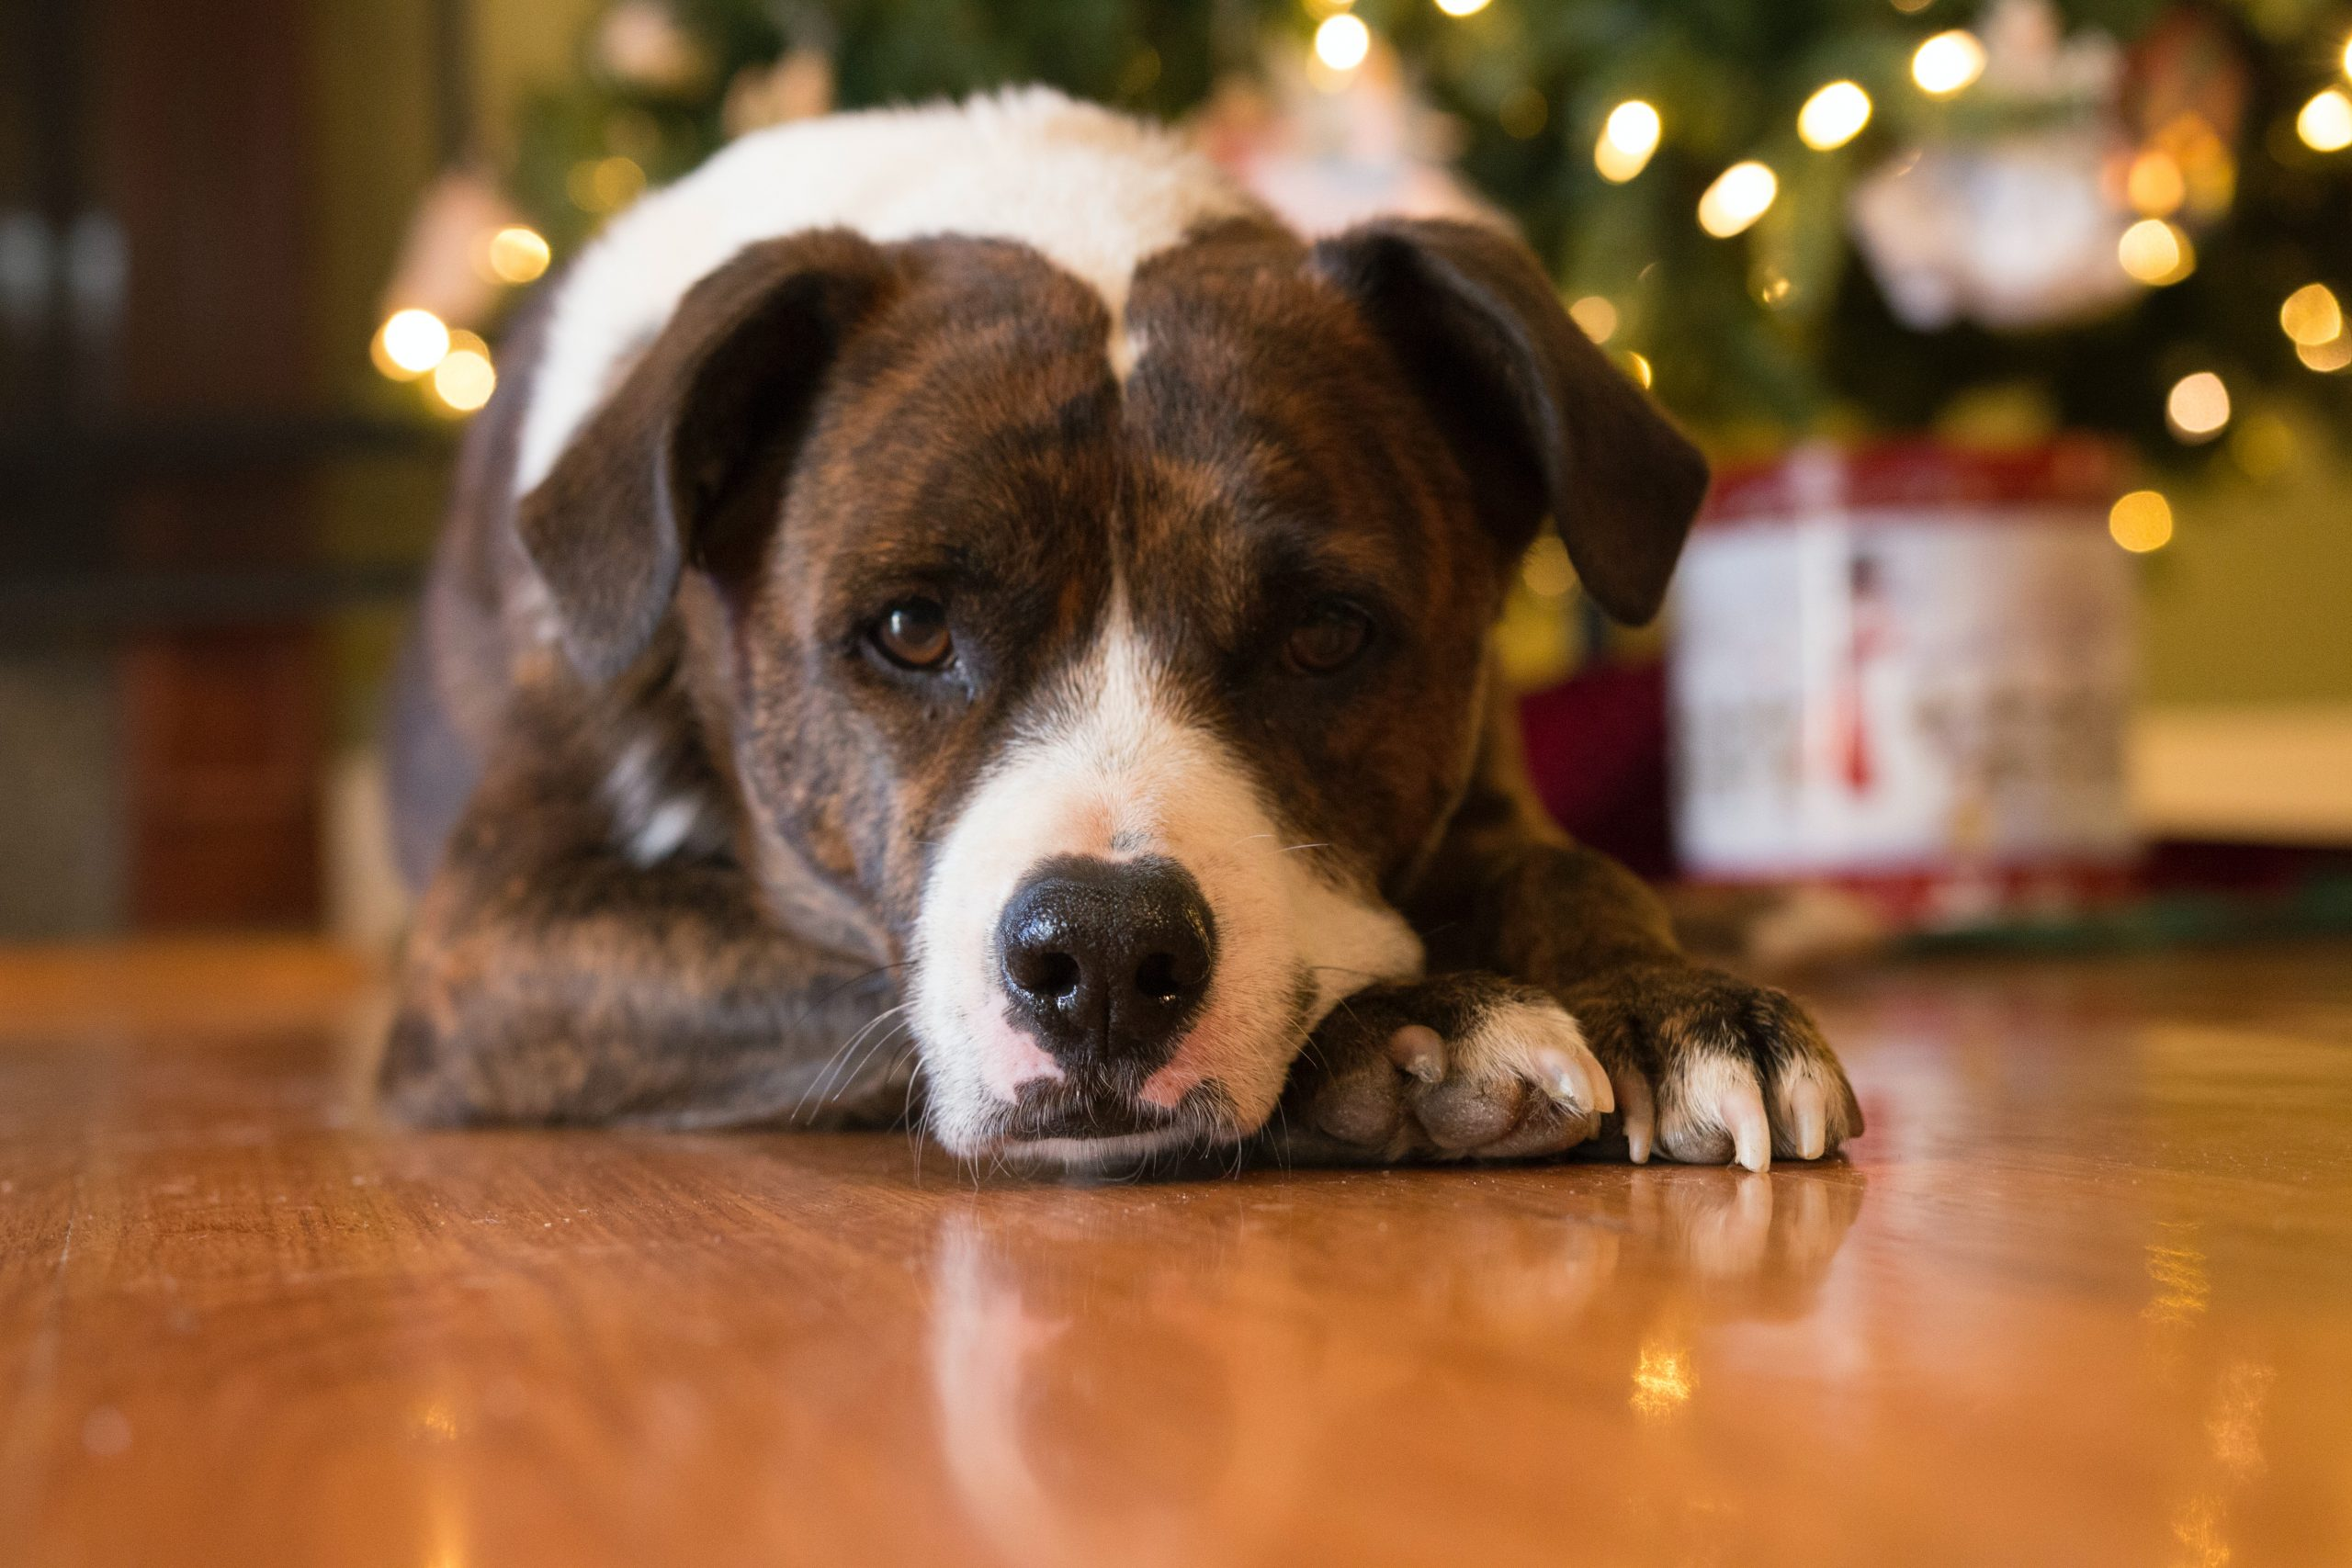 Dog Bite Prevention around the Holidays